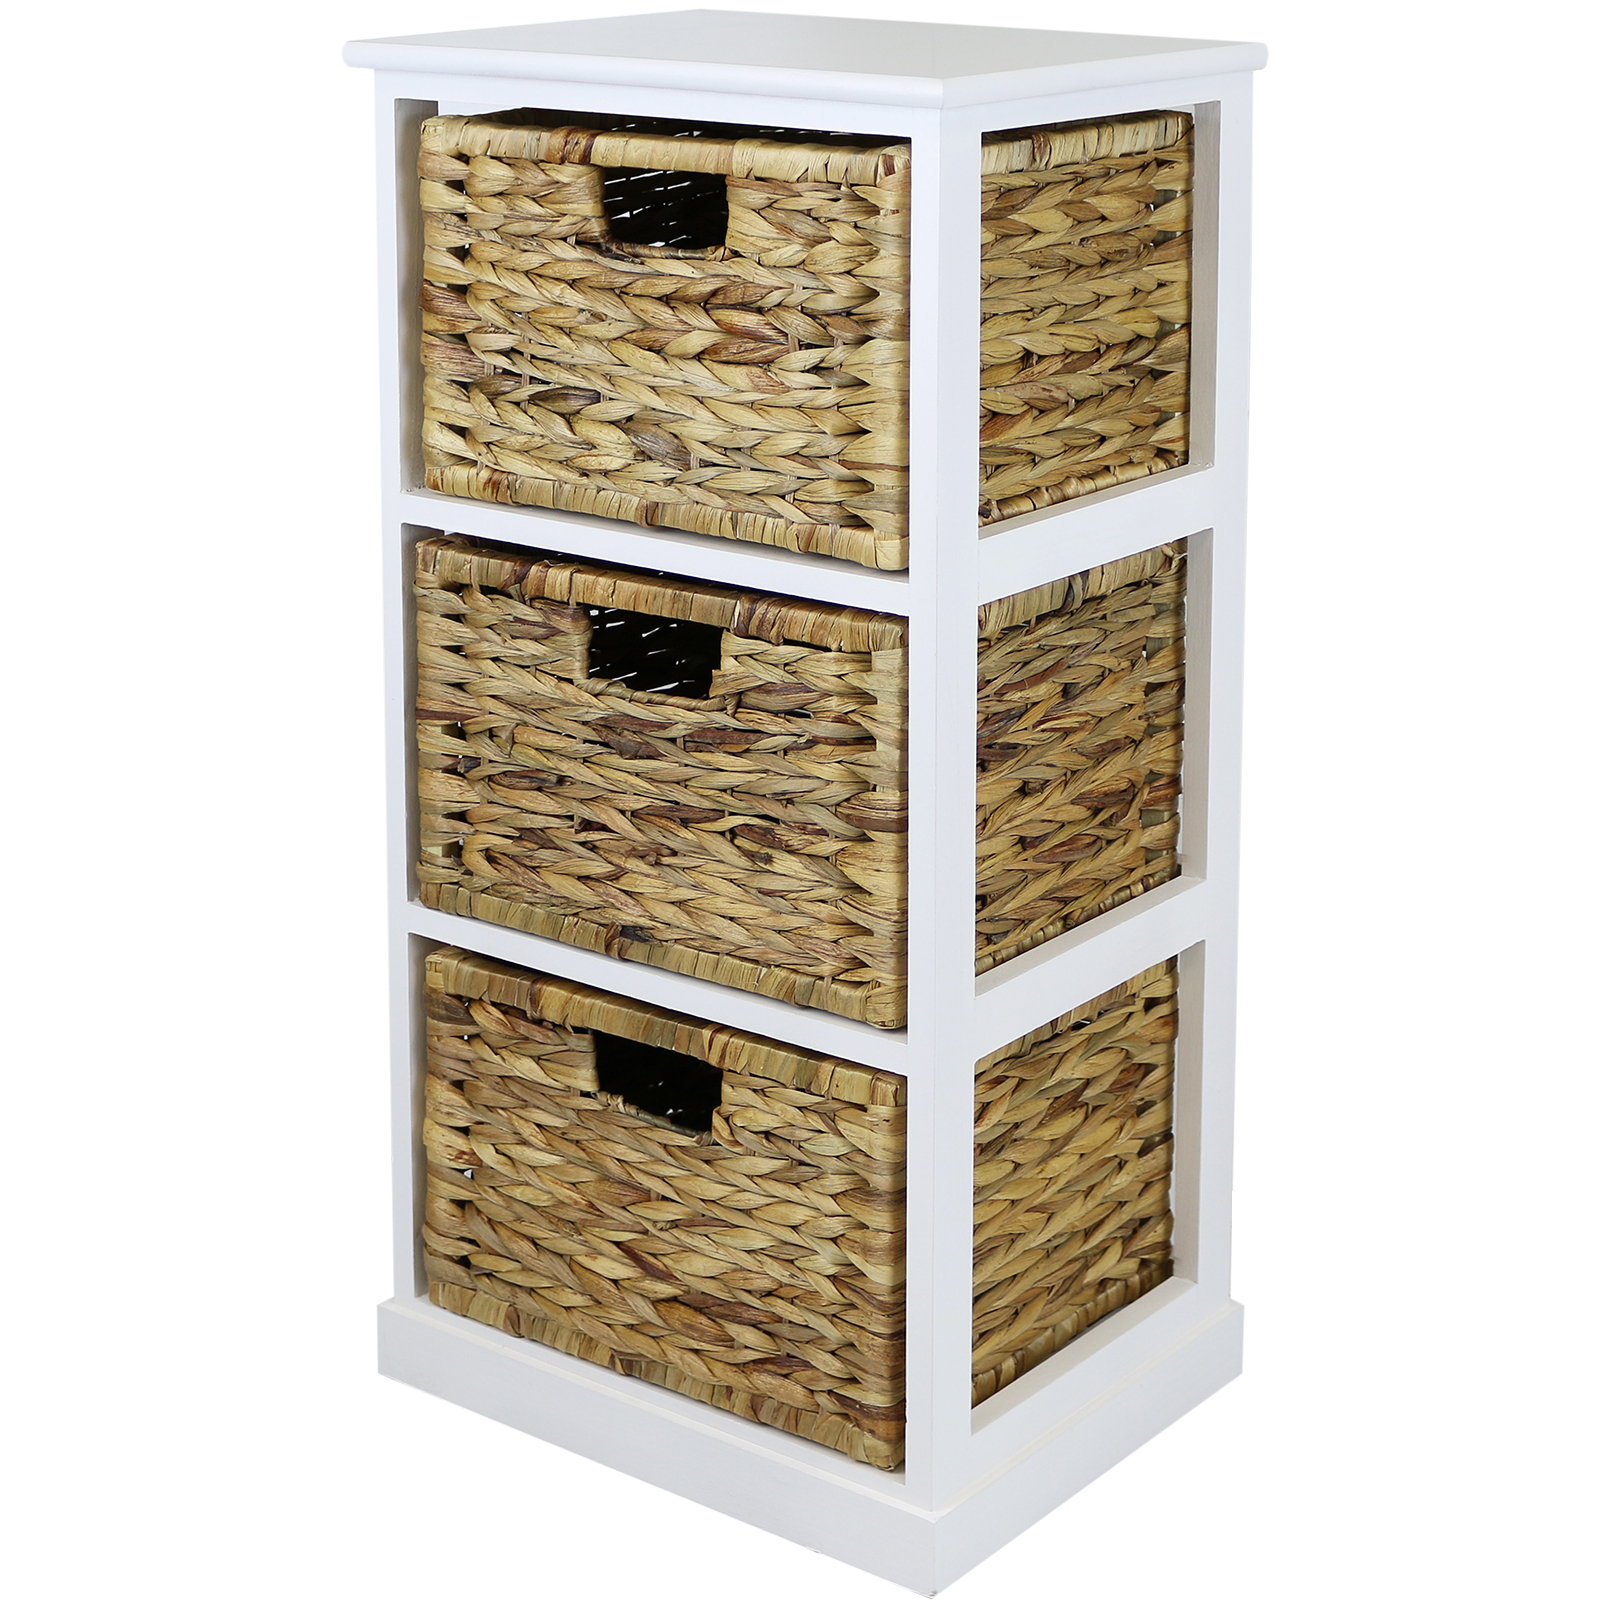 21 Creative Bathroom Storage Cabinets With Wicker Drawers